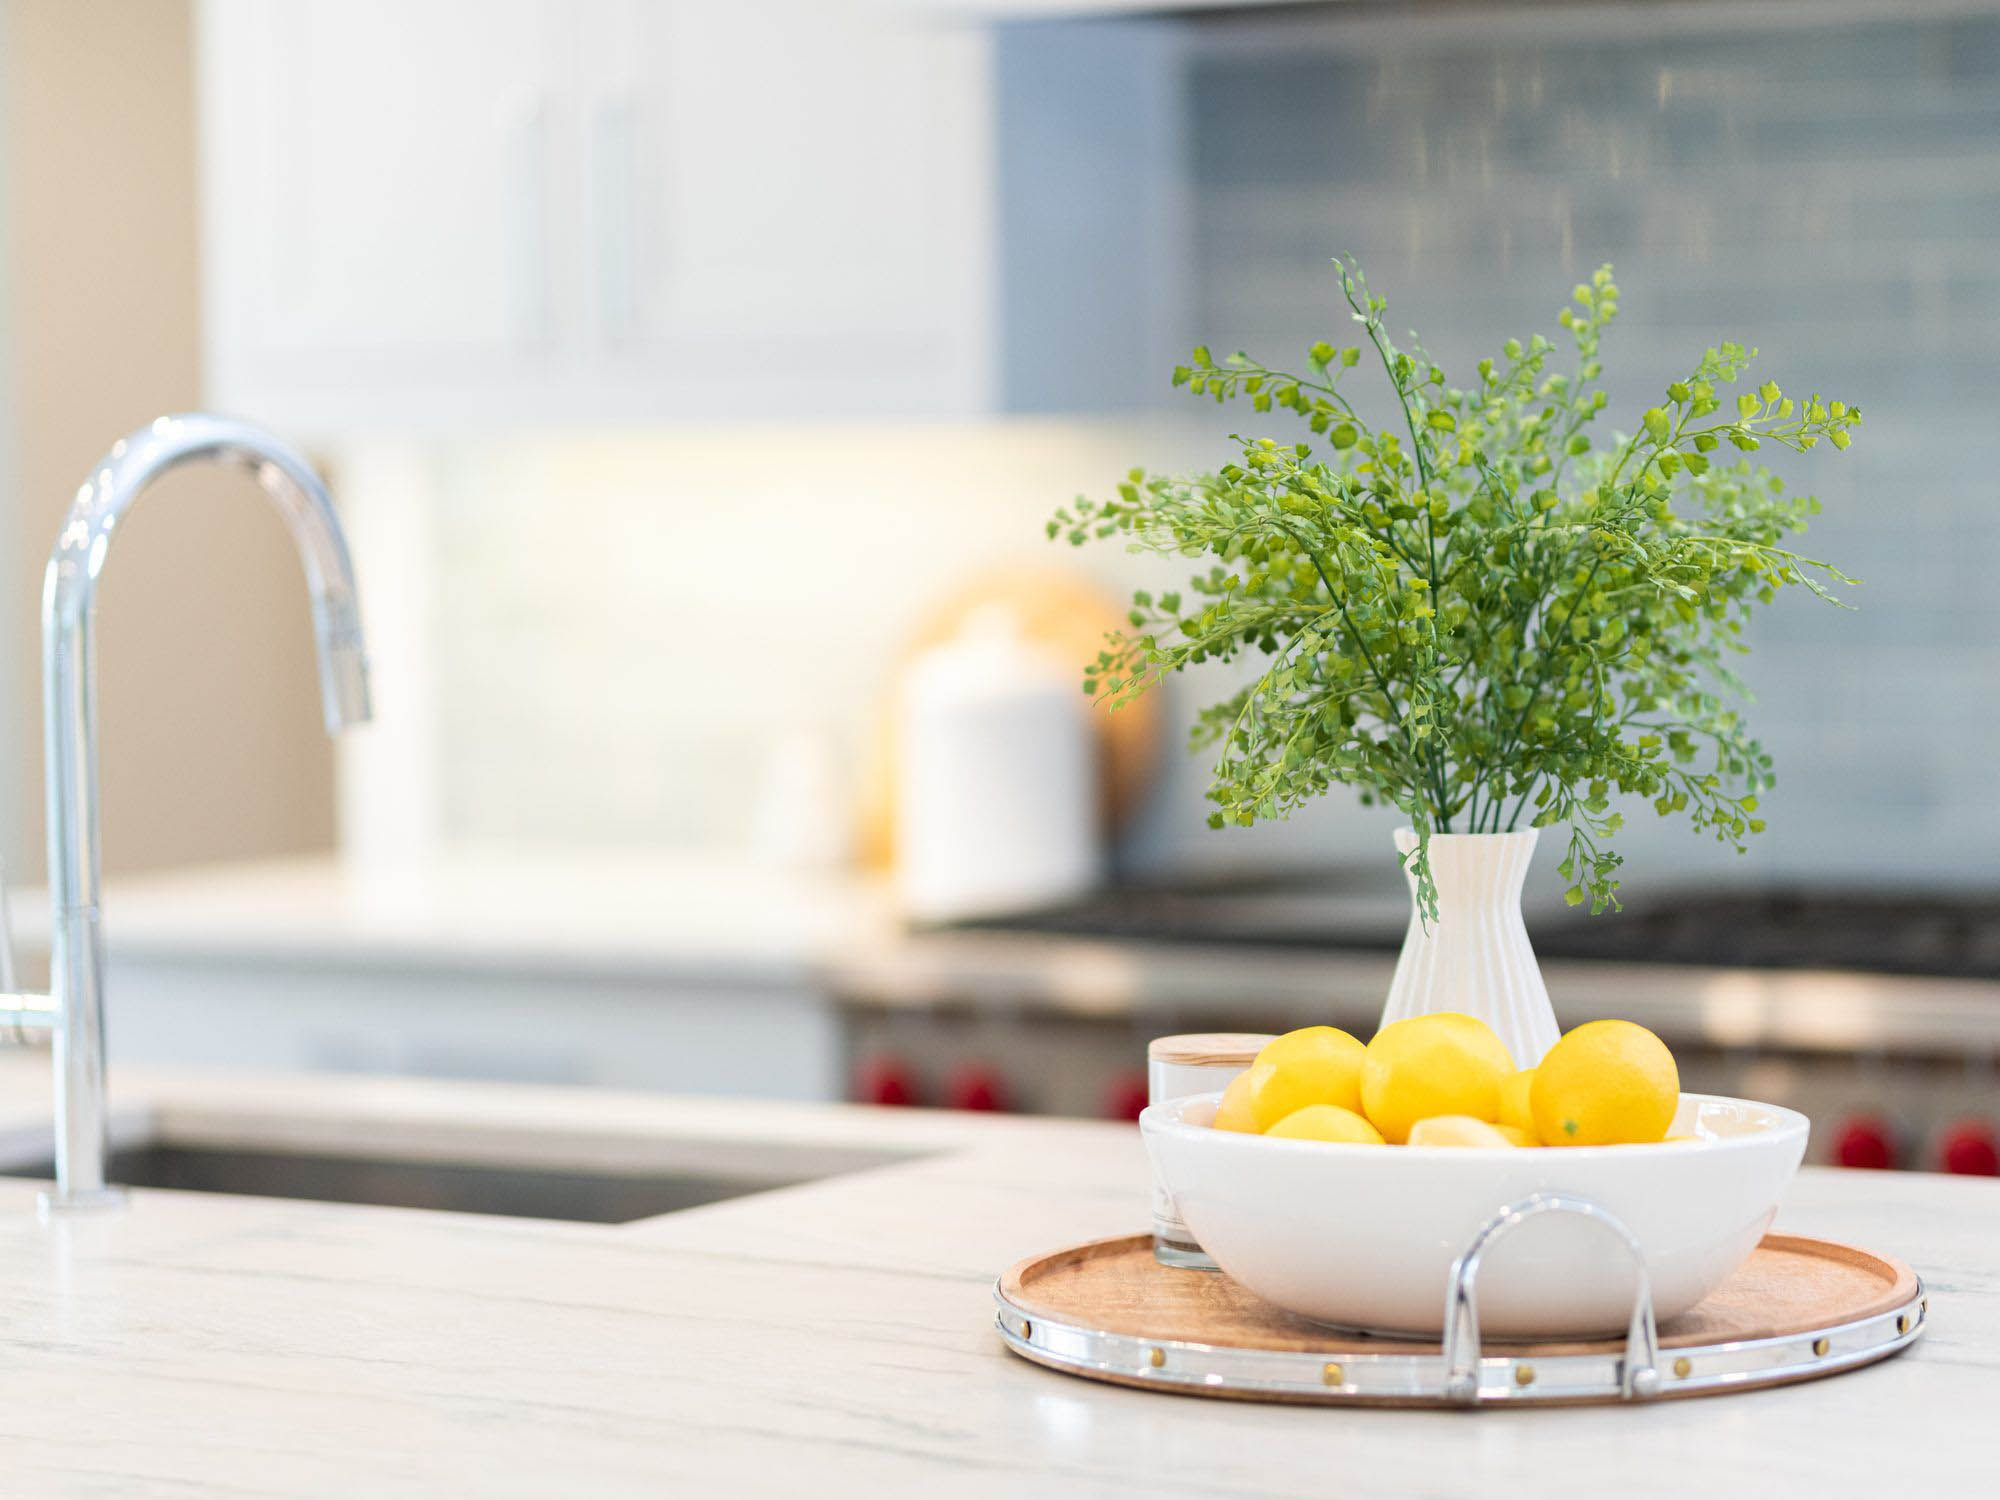 White quartz countertops with subtle gray veining. Closeup view of the counter and decorations. White bowl with lemons and a small plant.